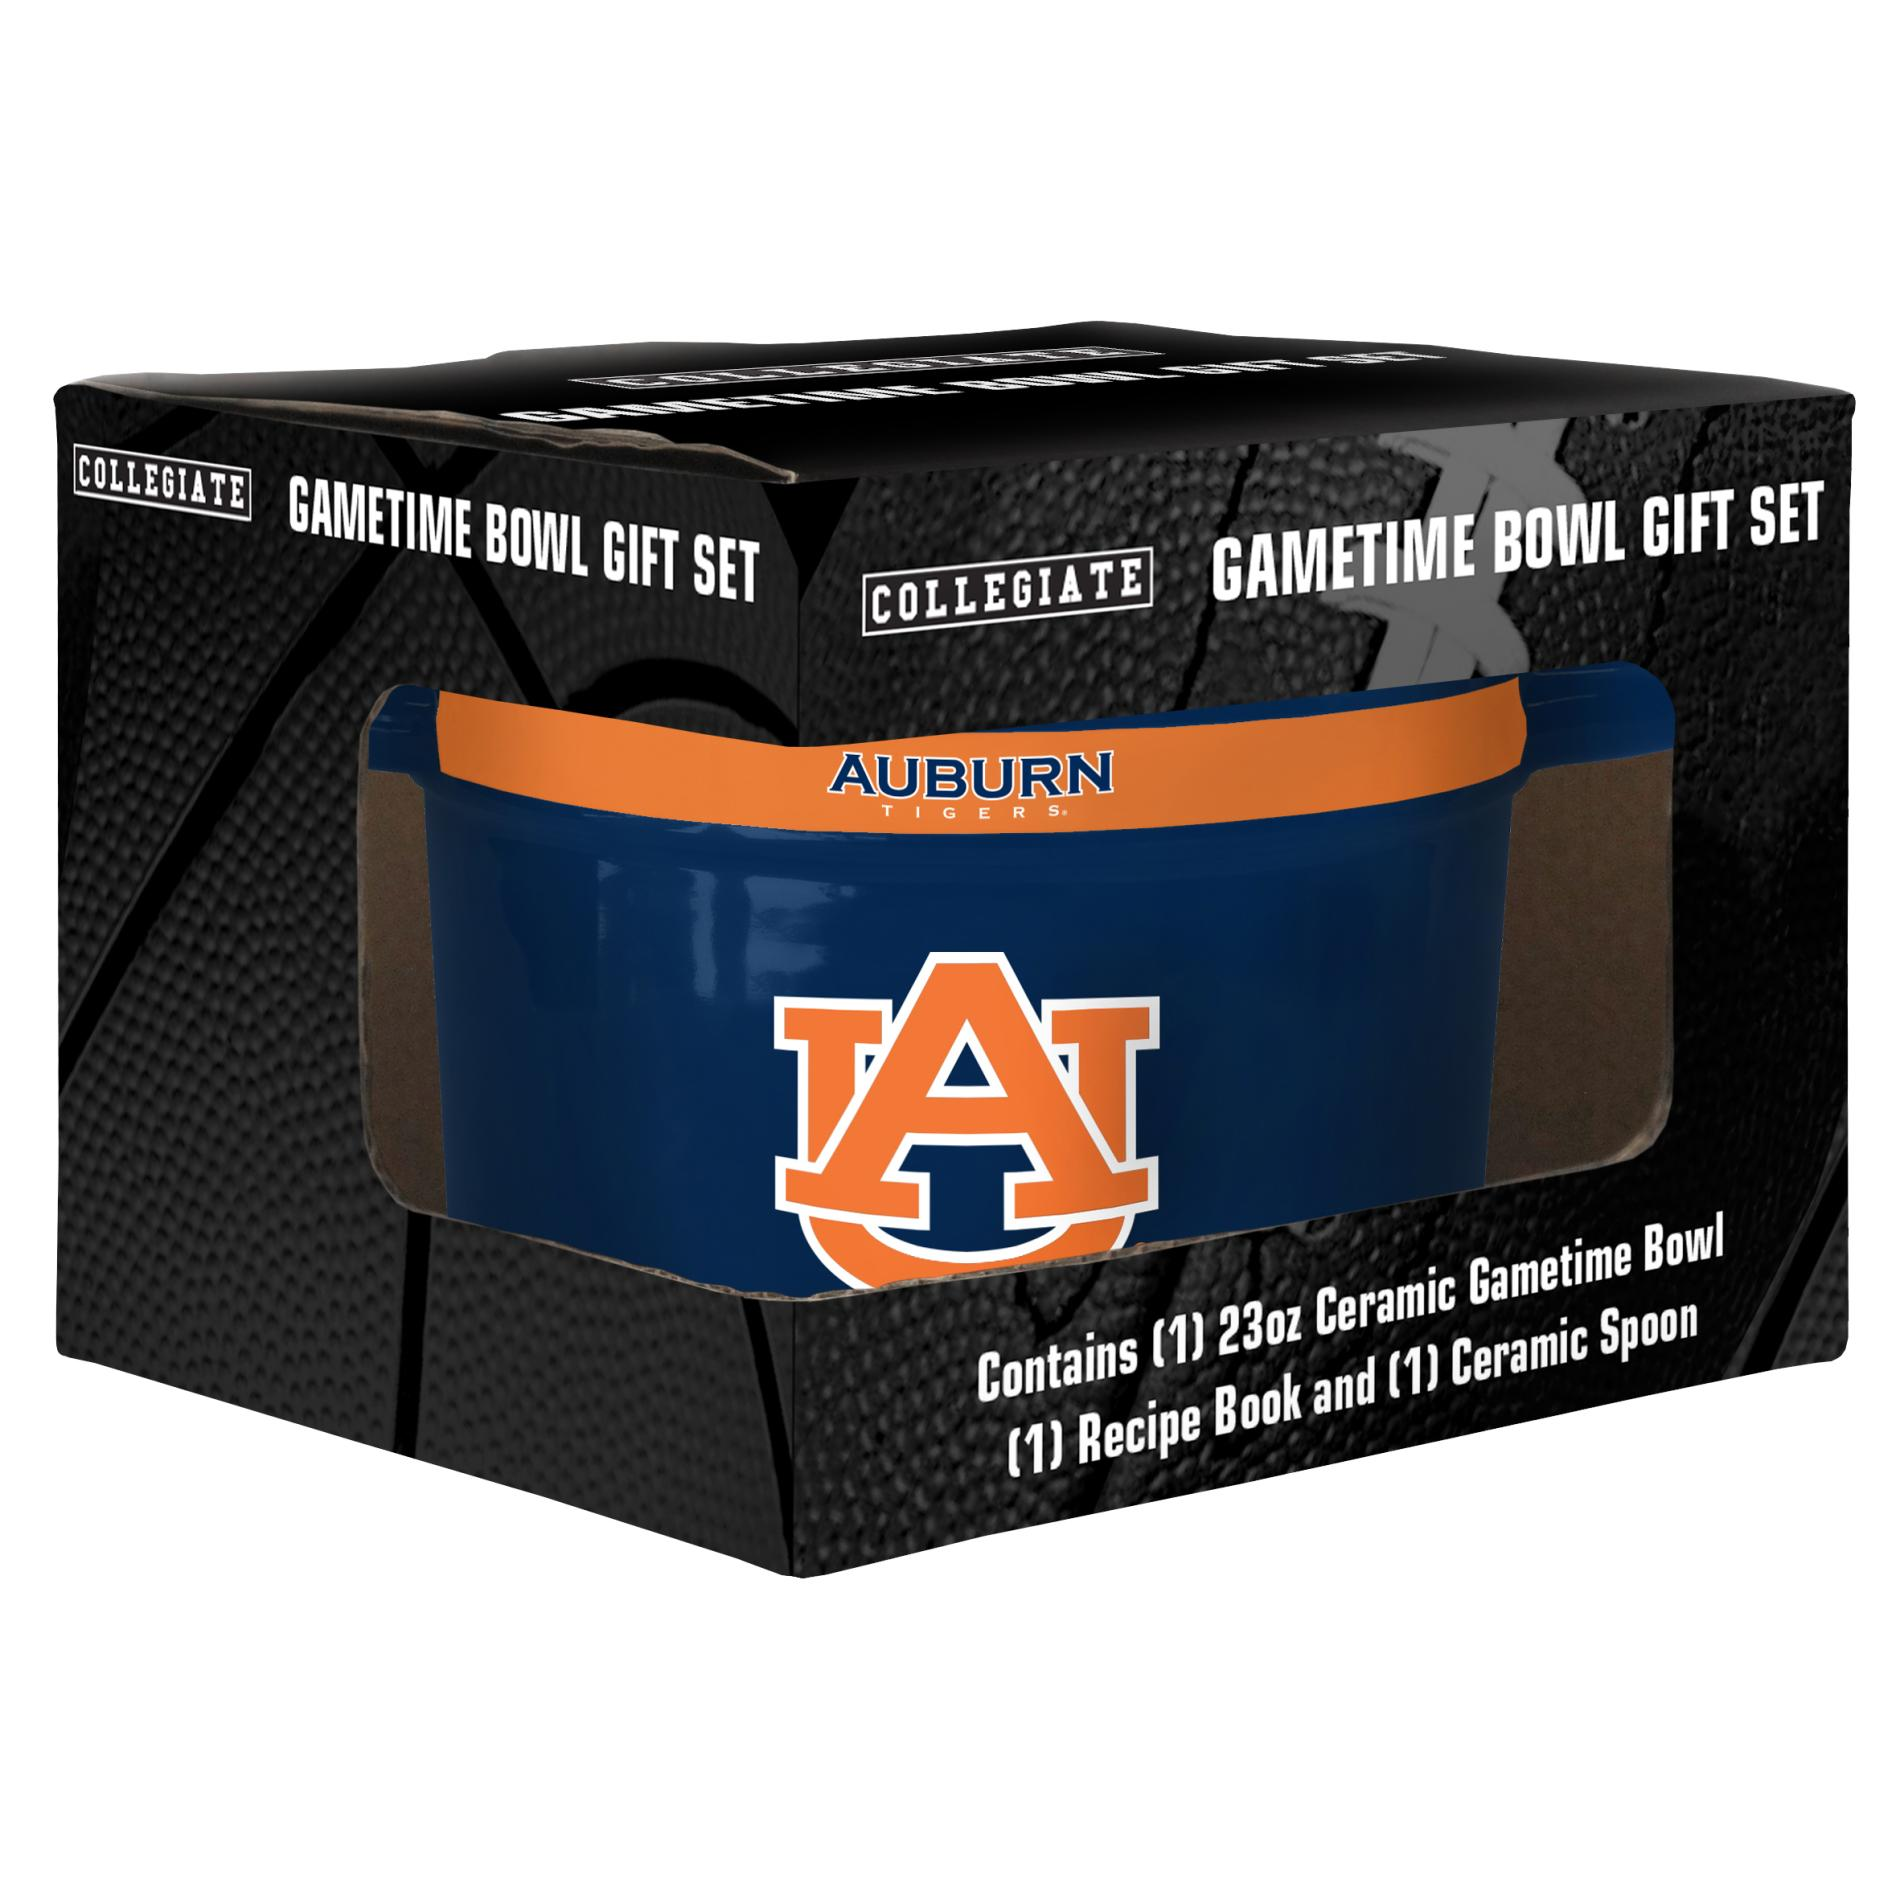 NCAA Ceramic Bowl Set - Auburn University Tigers PartNumber: 046W008427932001P KsnValue: 8427932 MfgPartNumber: 464082